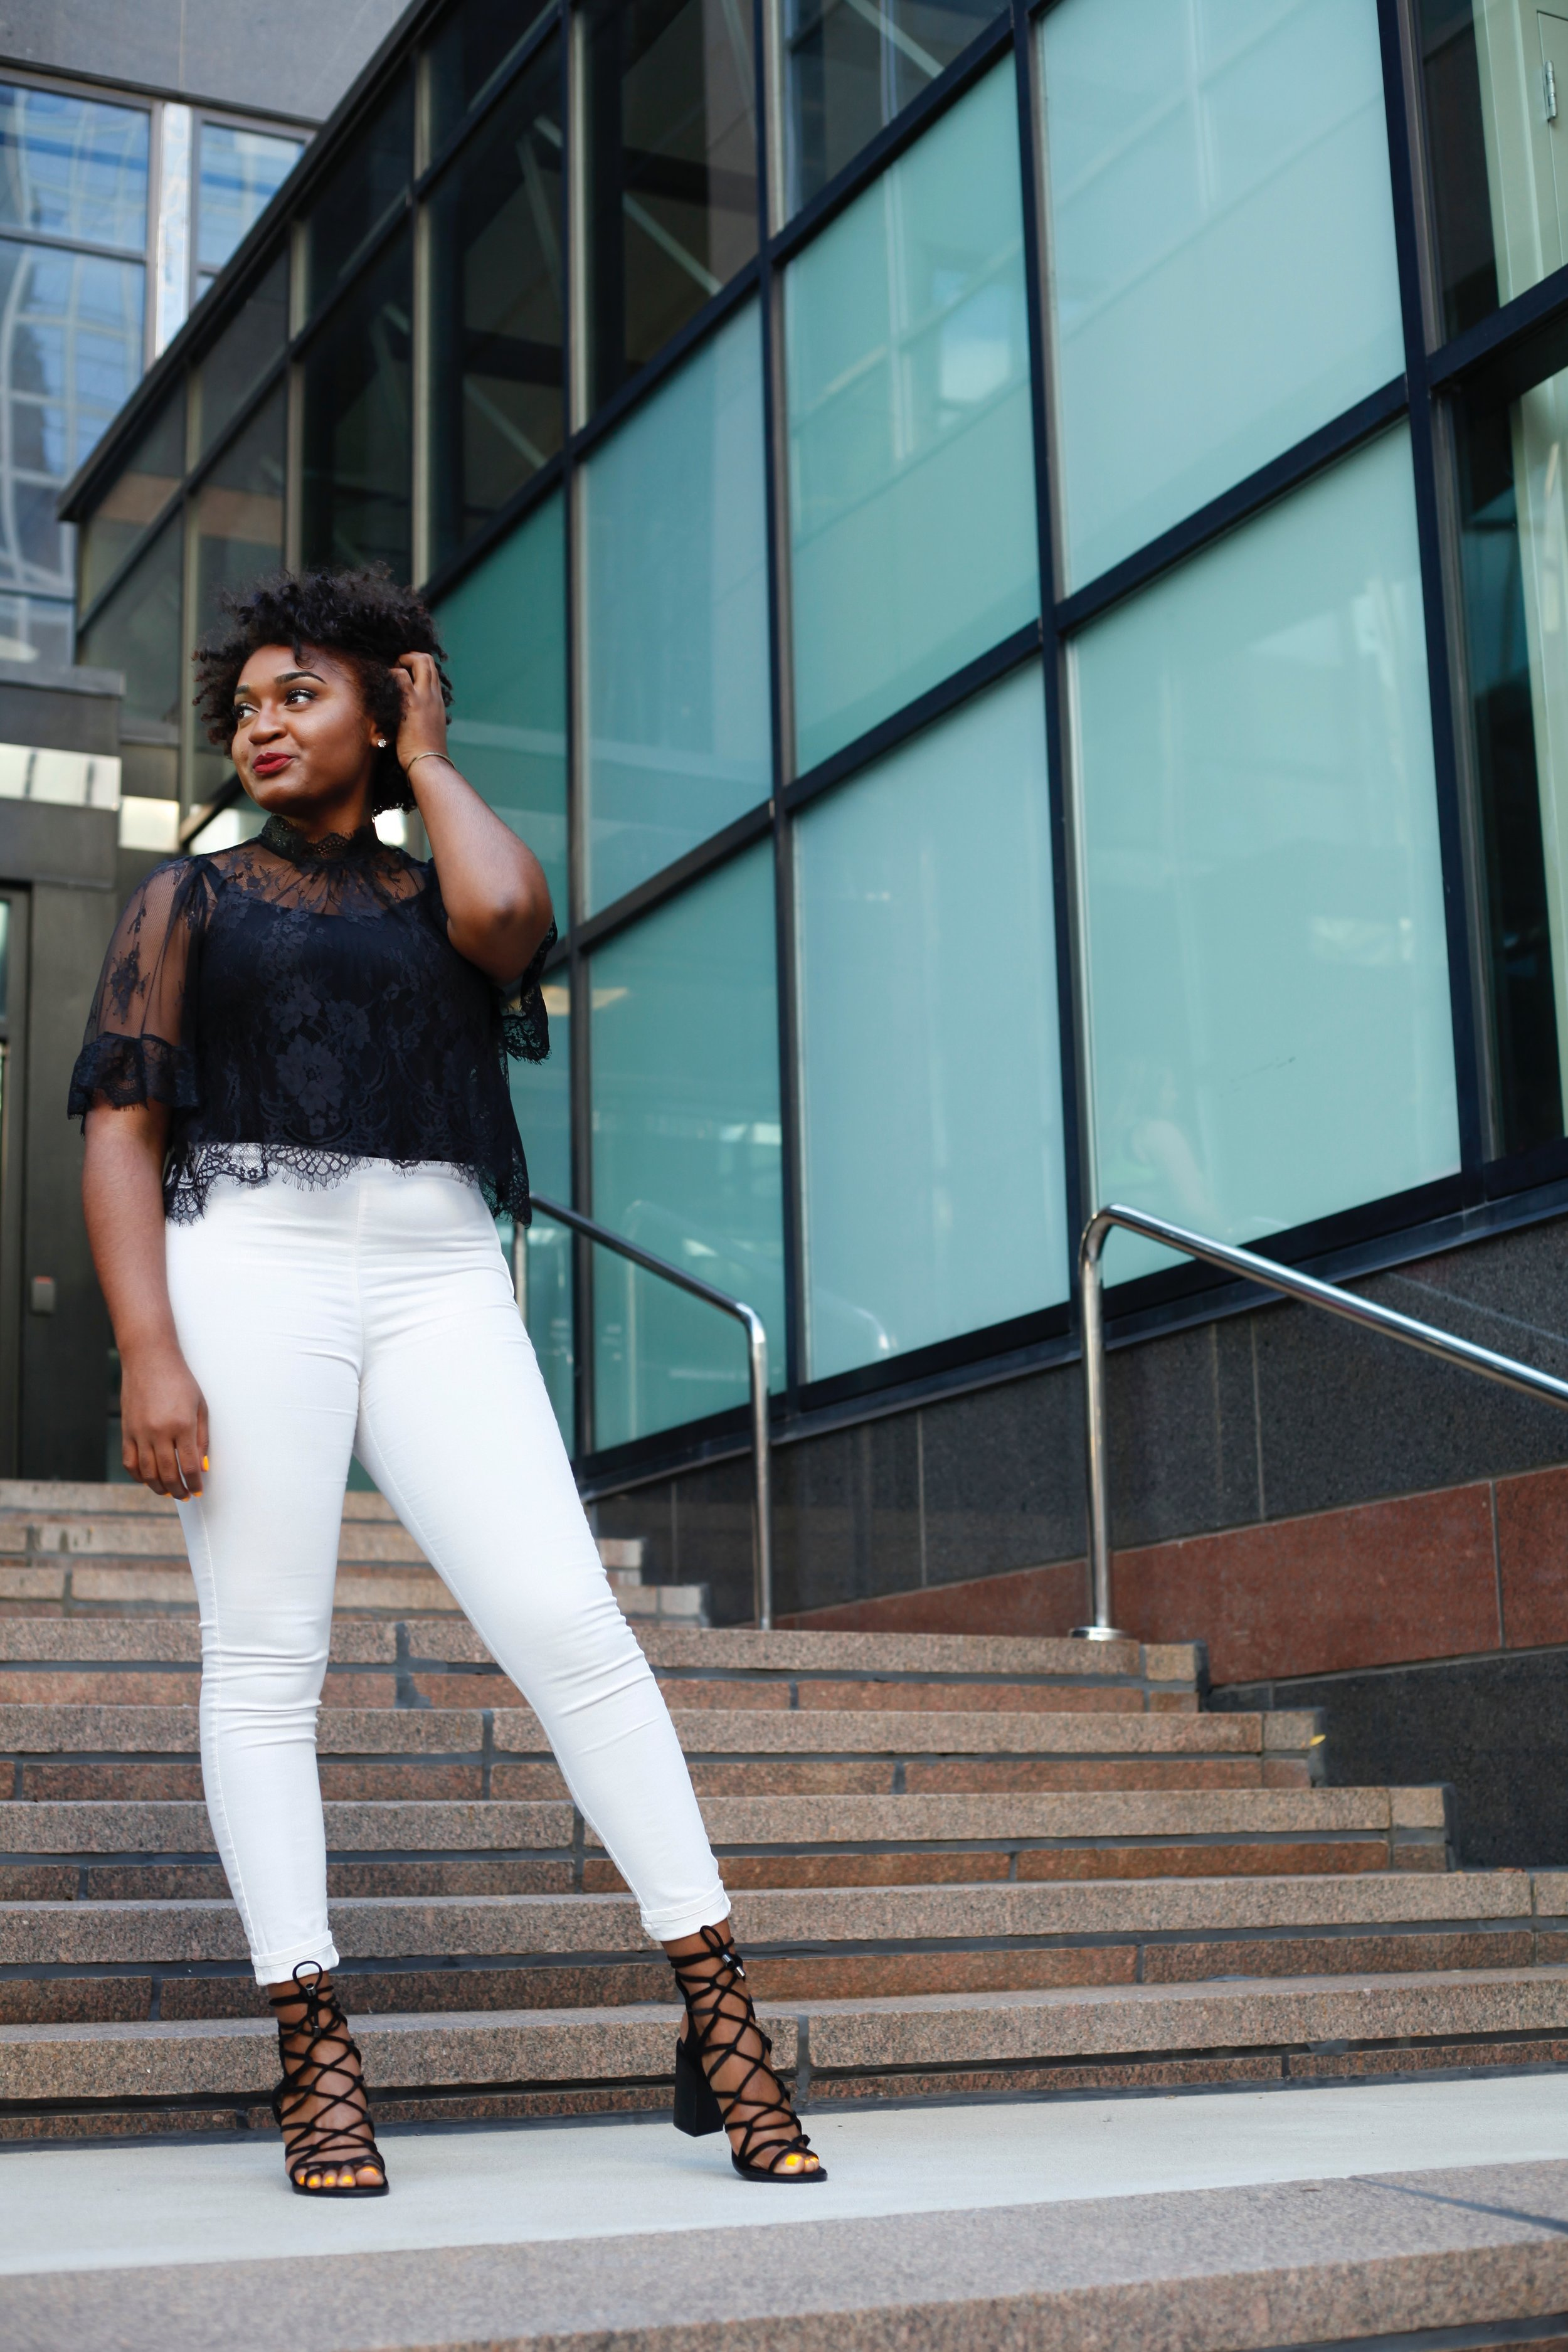 Black Lace Blouse and Strappy Heels for Date Night by Jasmine Diane. Fashion Blogger.